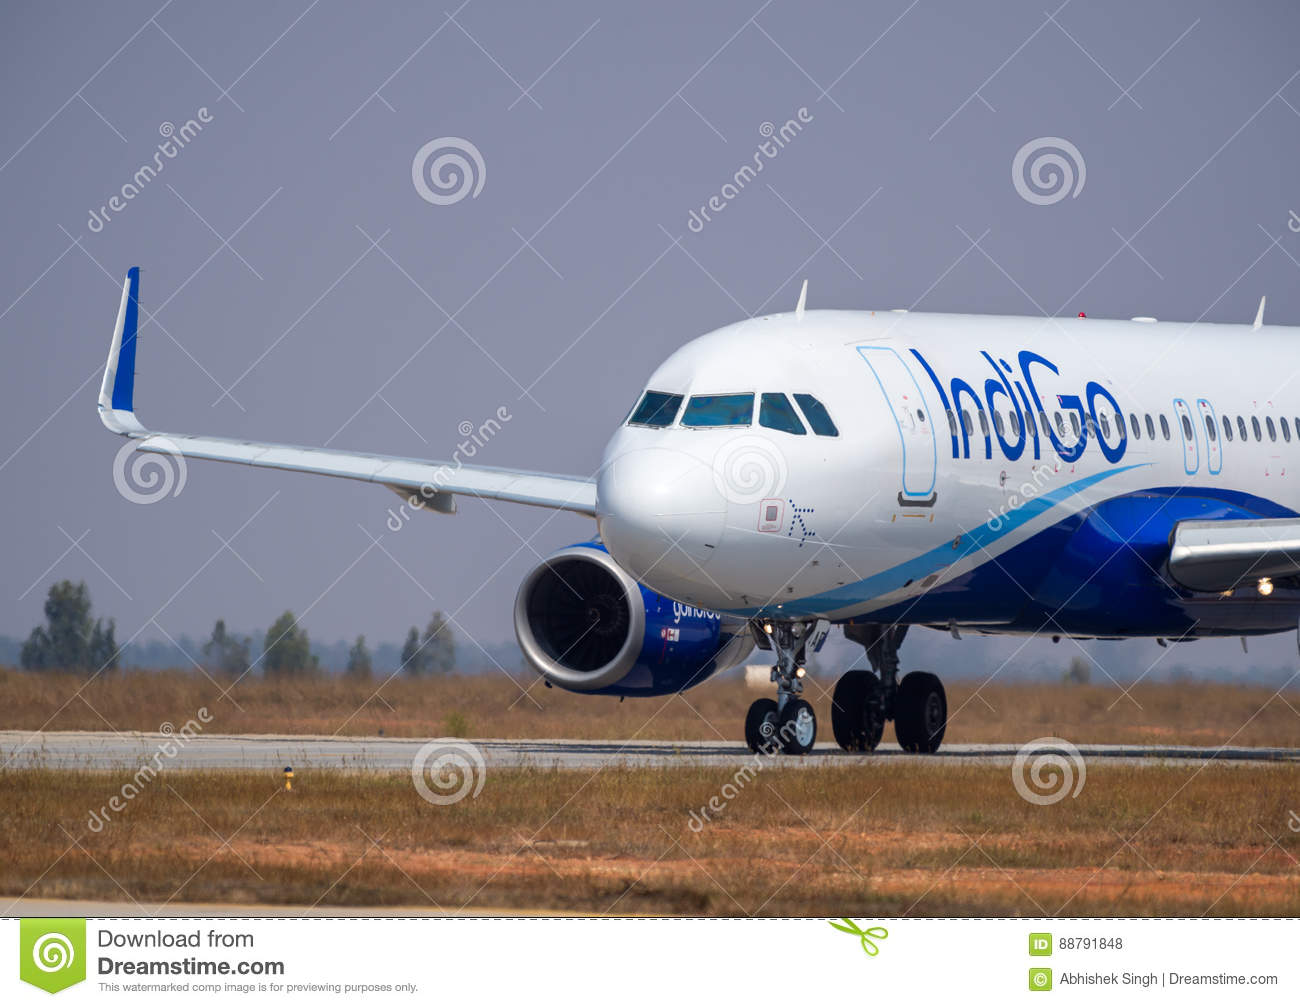 Download Indigo Airlines Airbus  Stock Image Editorial Stock Photo Image Of Ground